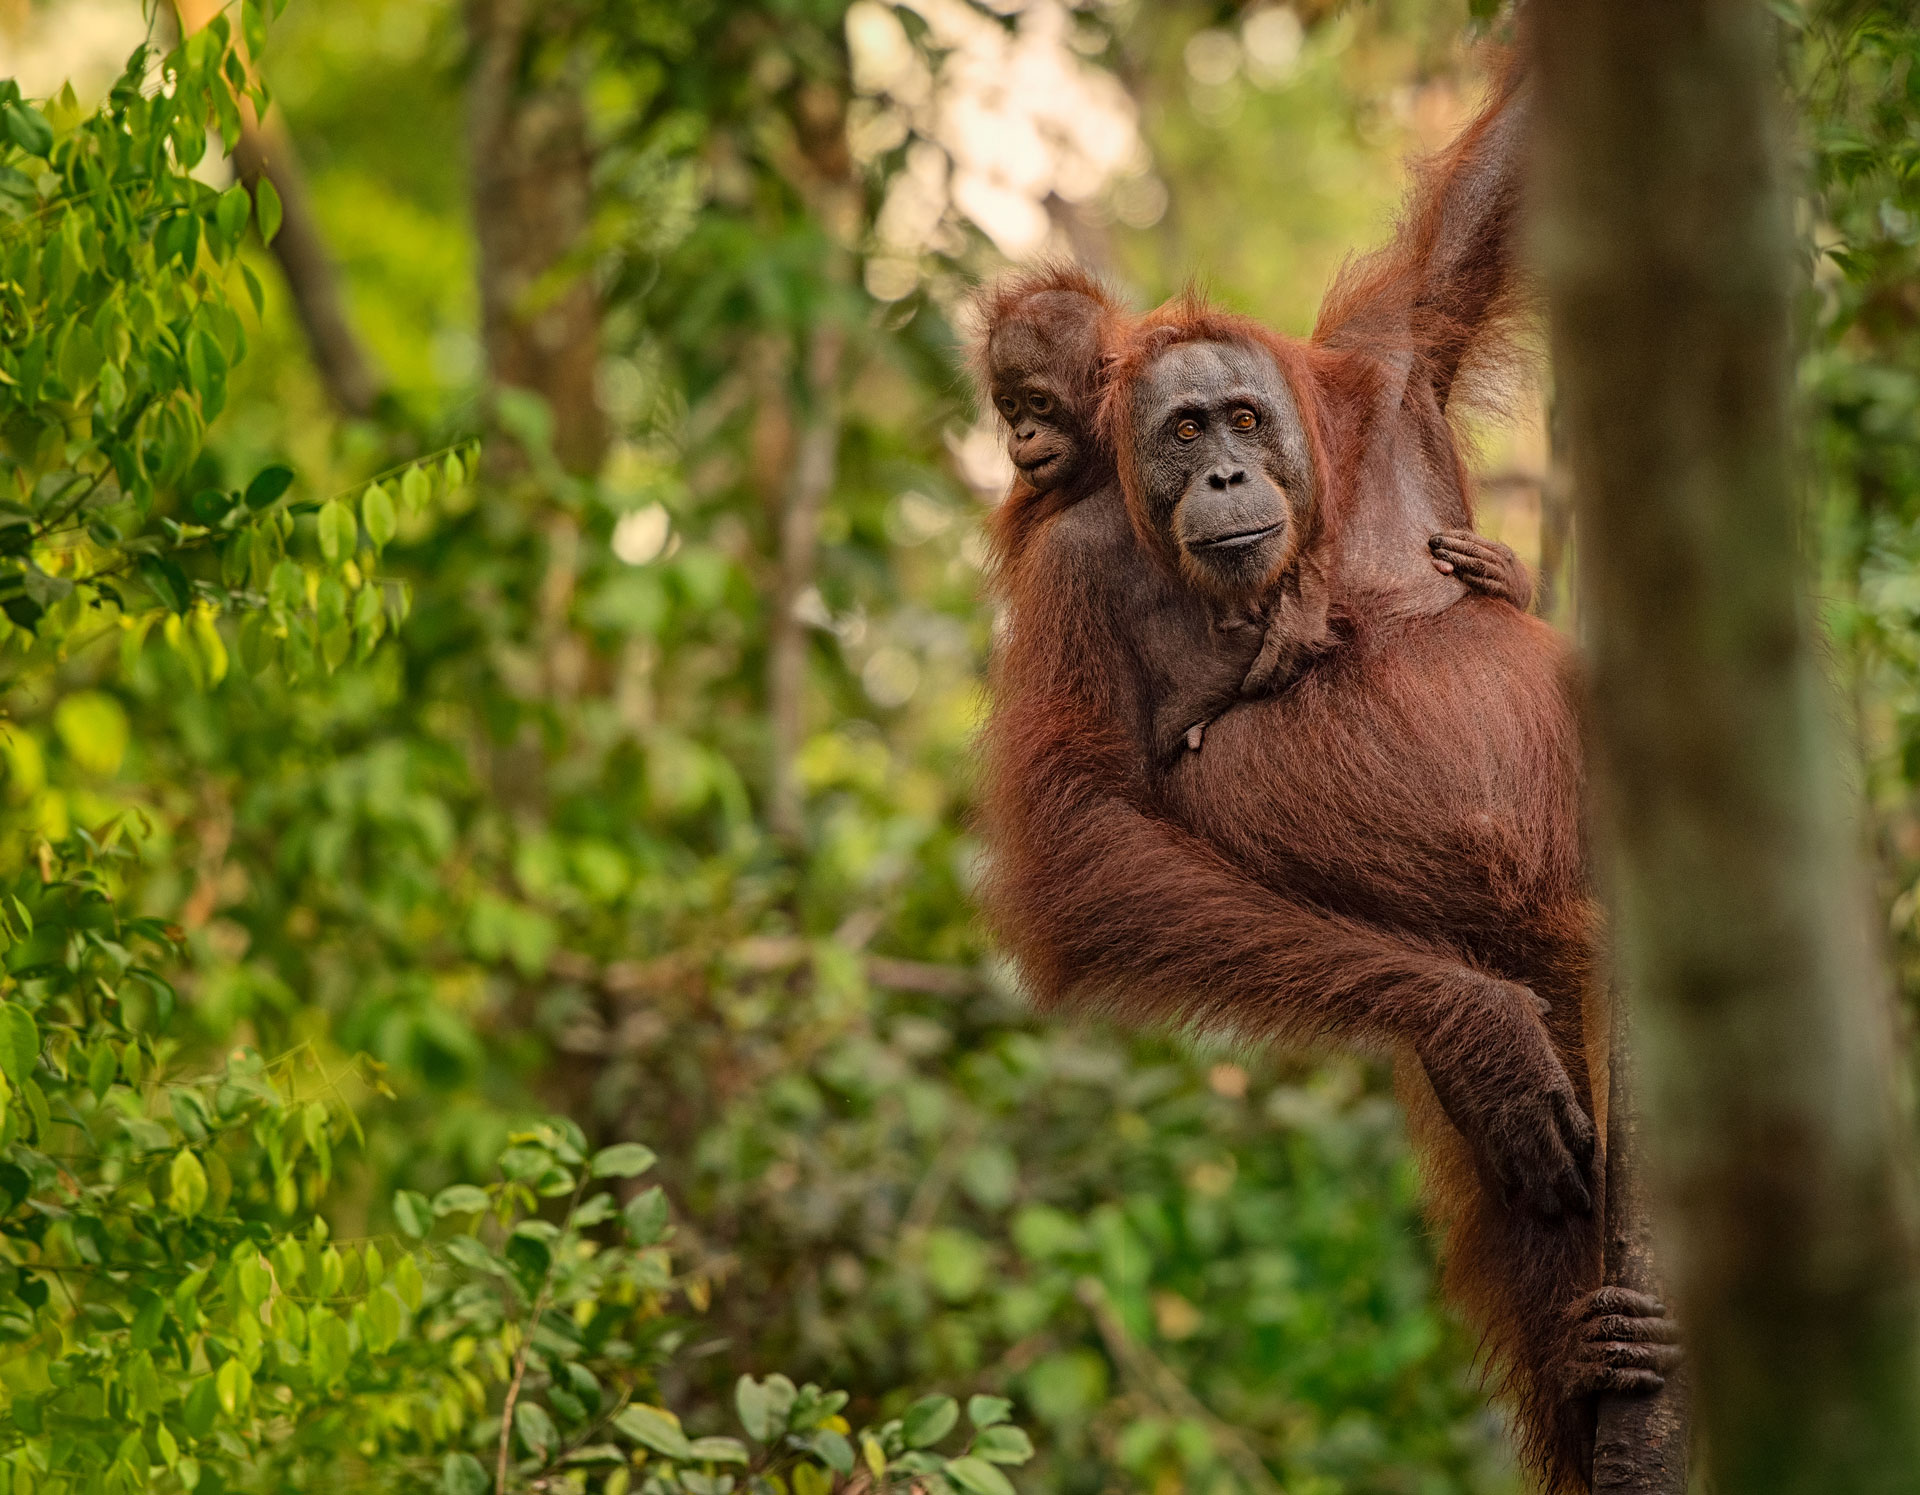 Orangutan conservation breakthrough pairs drones with space technology